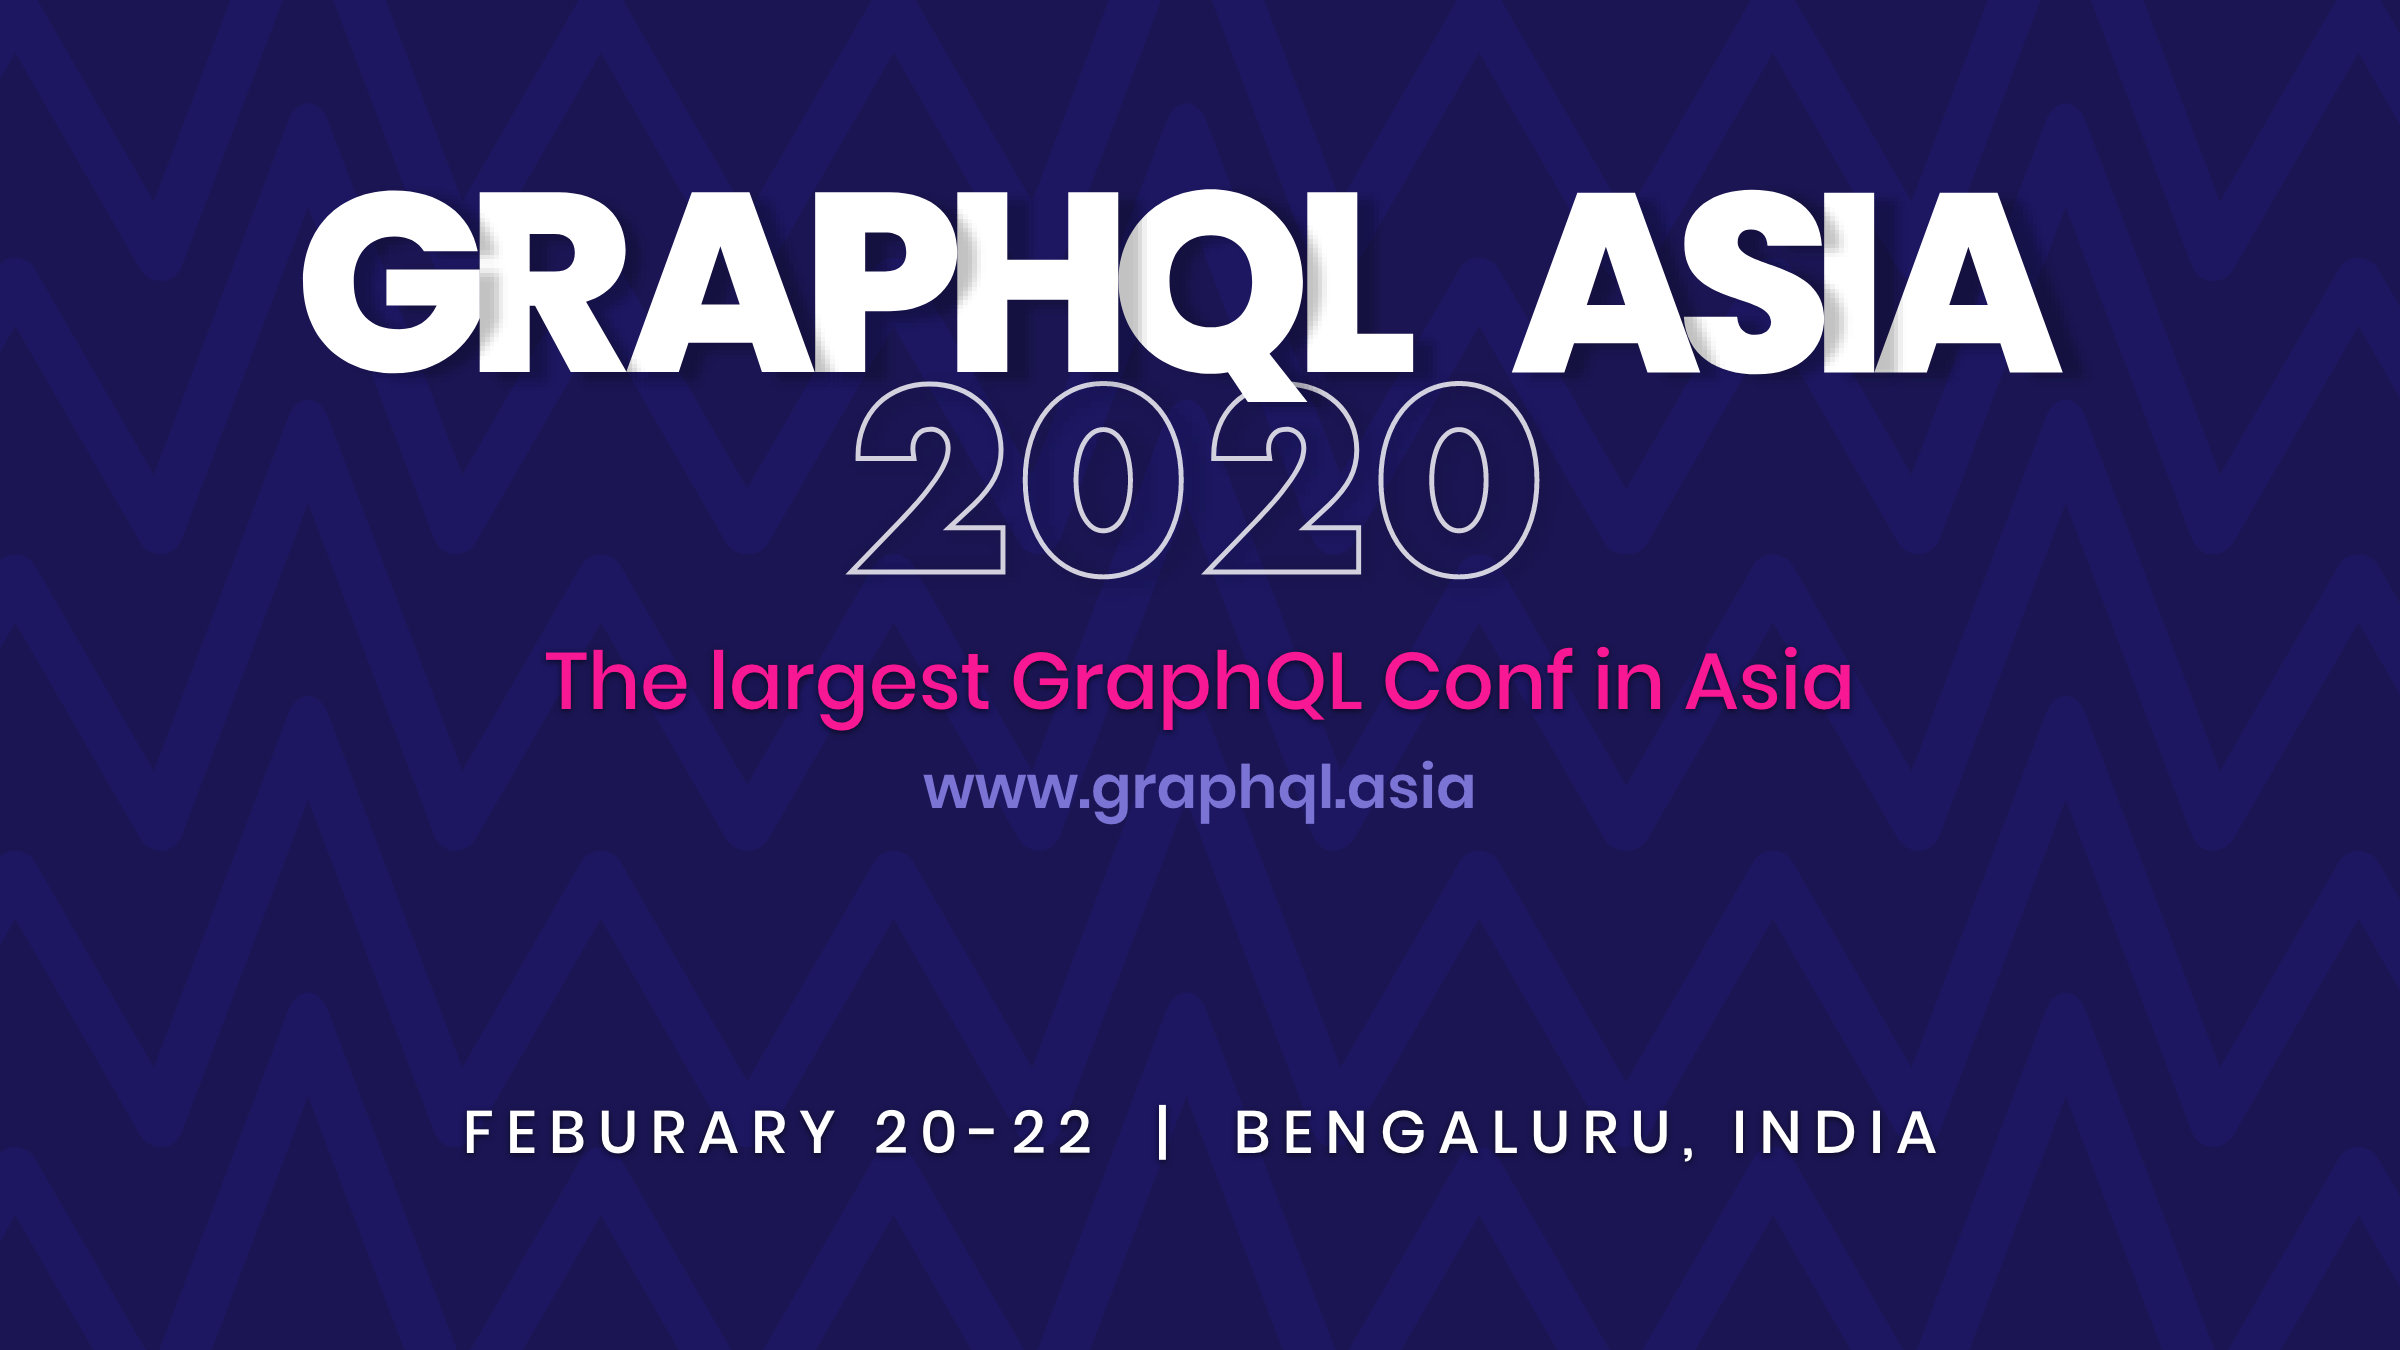 What to expect from GraphQL Asia 2020 ??